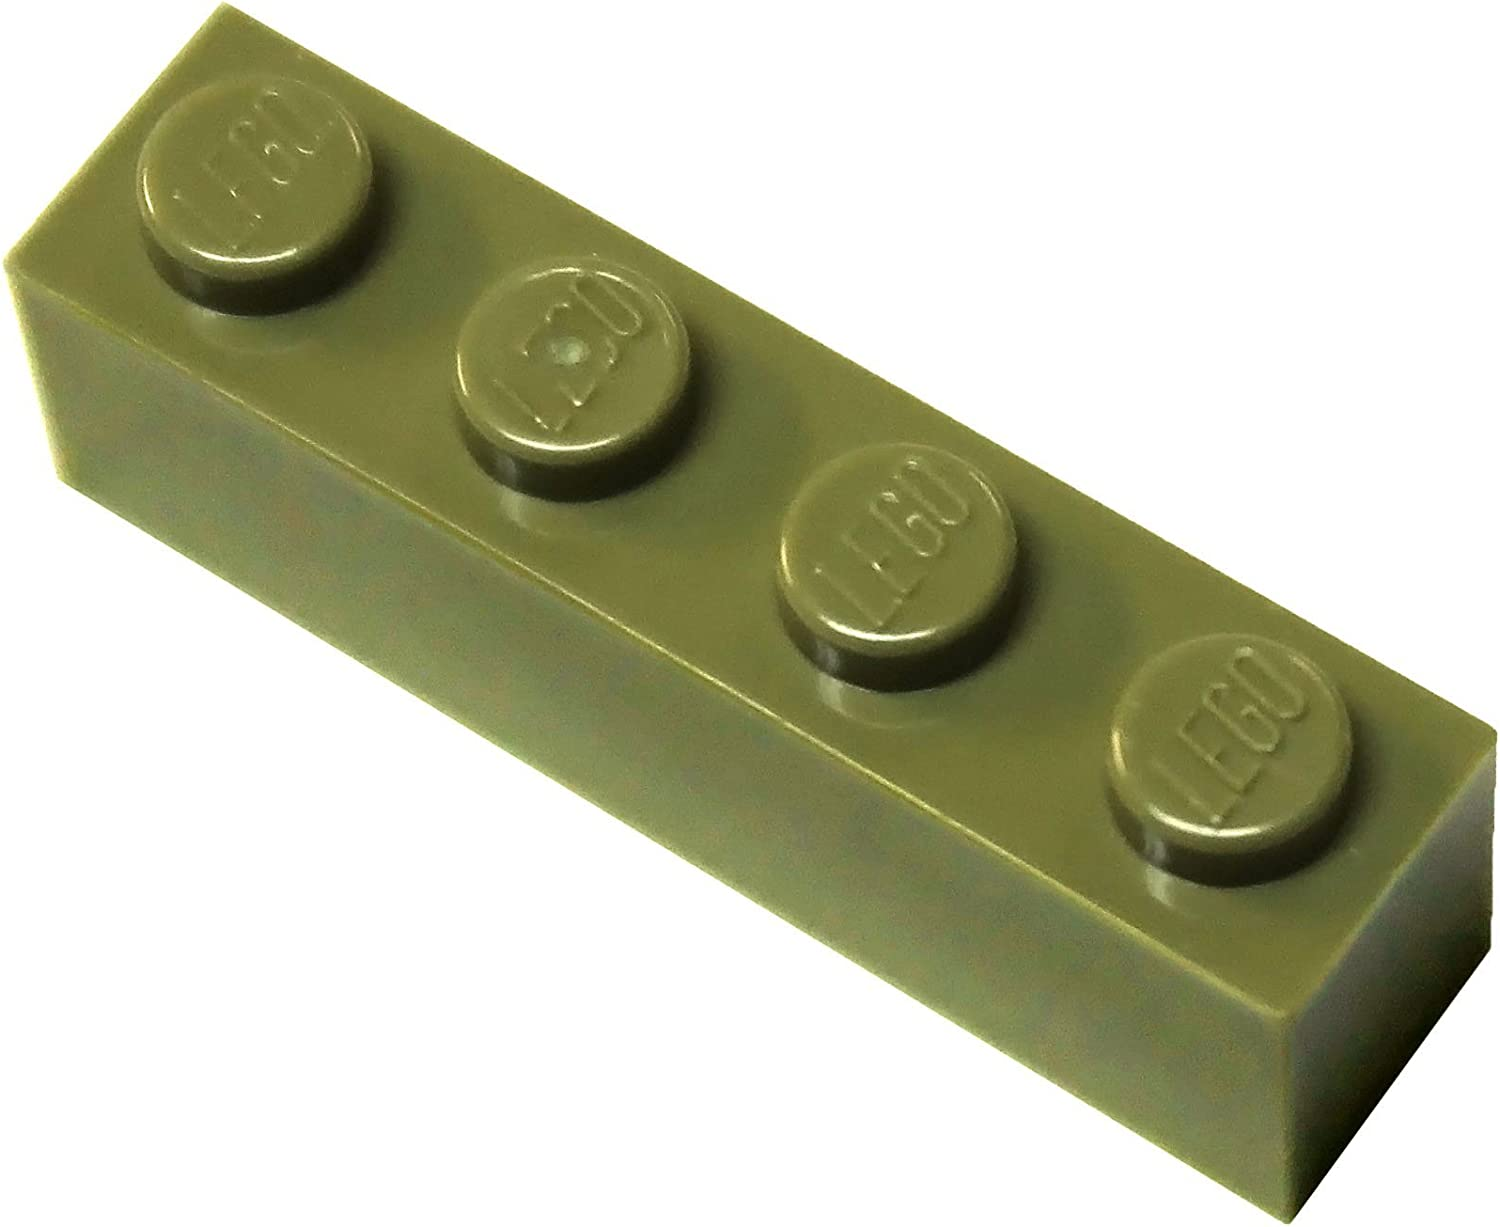 LEGO Parts and Pieces: Olive Green 1x4 Brick x200